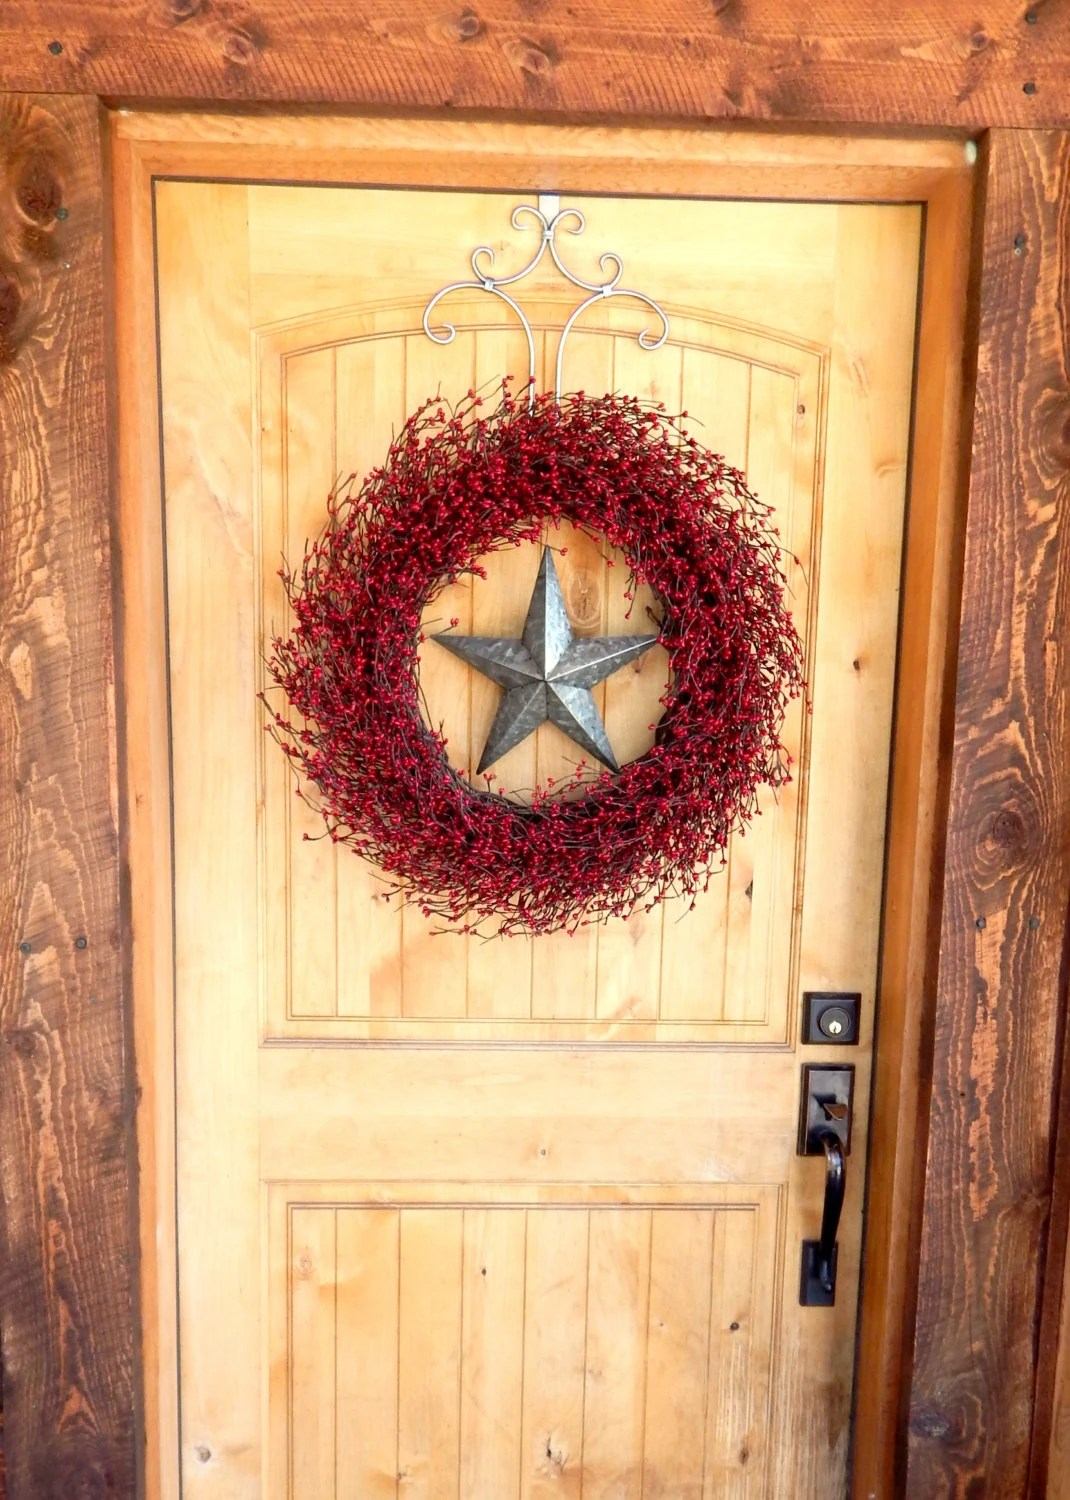 Fullsize Of Texas Rustic Home Decor